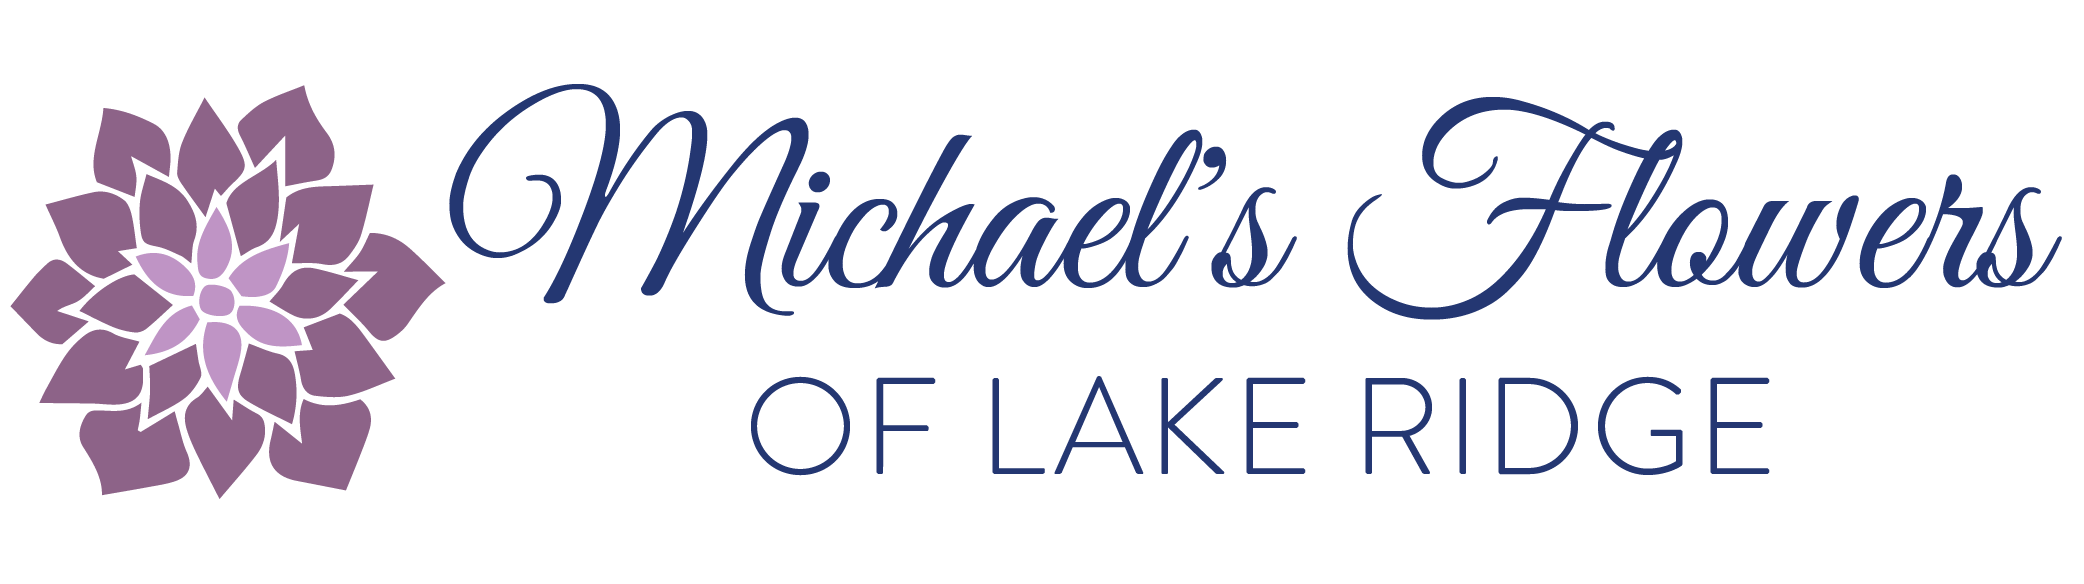 Michael's Flowers - Flower Delivery in Lake Ridge, VA